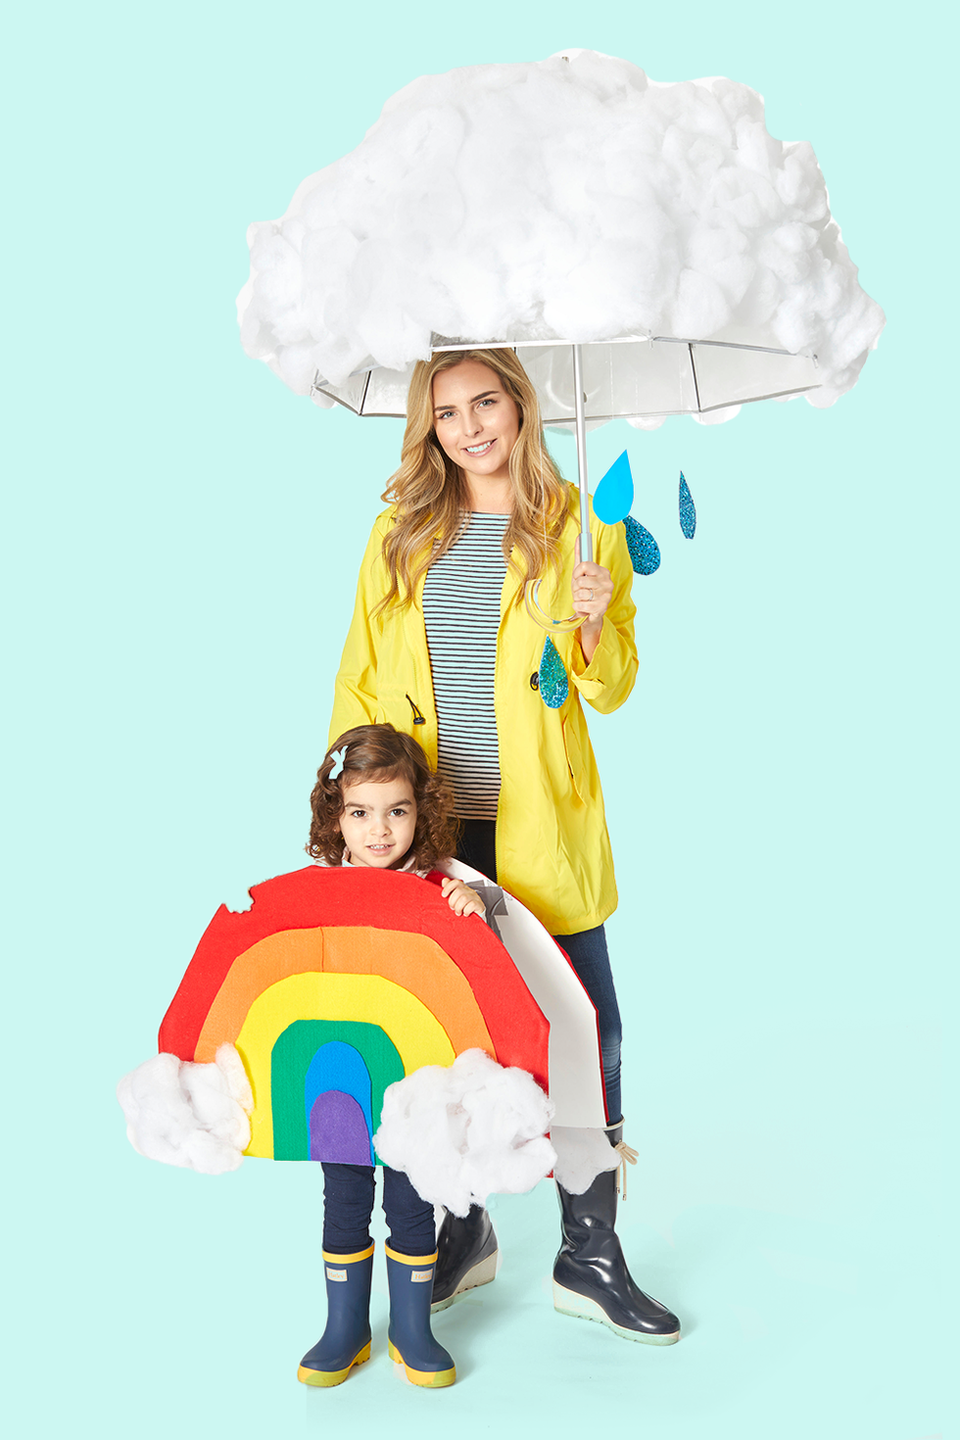 """<p>Most of this costume can be pulled out of your closet (a raincoat, rain boots, and umbrella). The rest you can DIY with your kid out of construction paper and polyester batting.</p><p><strong>Get the tutorial at <a href=""""https://www.goodhousekeeping.com/holidays/halloween-ideas/g2750/easy-last-minute-halloween-costumes-diy/"""" rel=""""nofollow noopener"""" target=""""_blank"""" data-ylk=""""slk:Good Housekeeping"""" class=""""link rapid-noclick-resp"""">Good Housekeeping</a>.</strong> </p><p><a class=""""link rapid-noclick-resp"""" href=""""https://www.amazon.com/Mountain-Mist-Polyester-Batting-36-inch/dp/B0009RWIP4?tag=syn-yahoo-20&ascsubtag=%5Bartid%7C10050.g.28181767%5Bsrc%7Cyahoo-us"""" rel=""""nofollow noopener"""" target=""""_blank"""" data-ylk=""""slk:SHOP POLYESTER BATTING"""">SHOP POLYESTER BATTING</a></p>"""